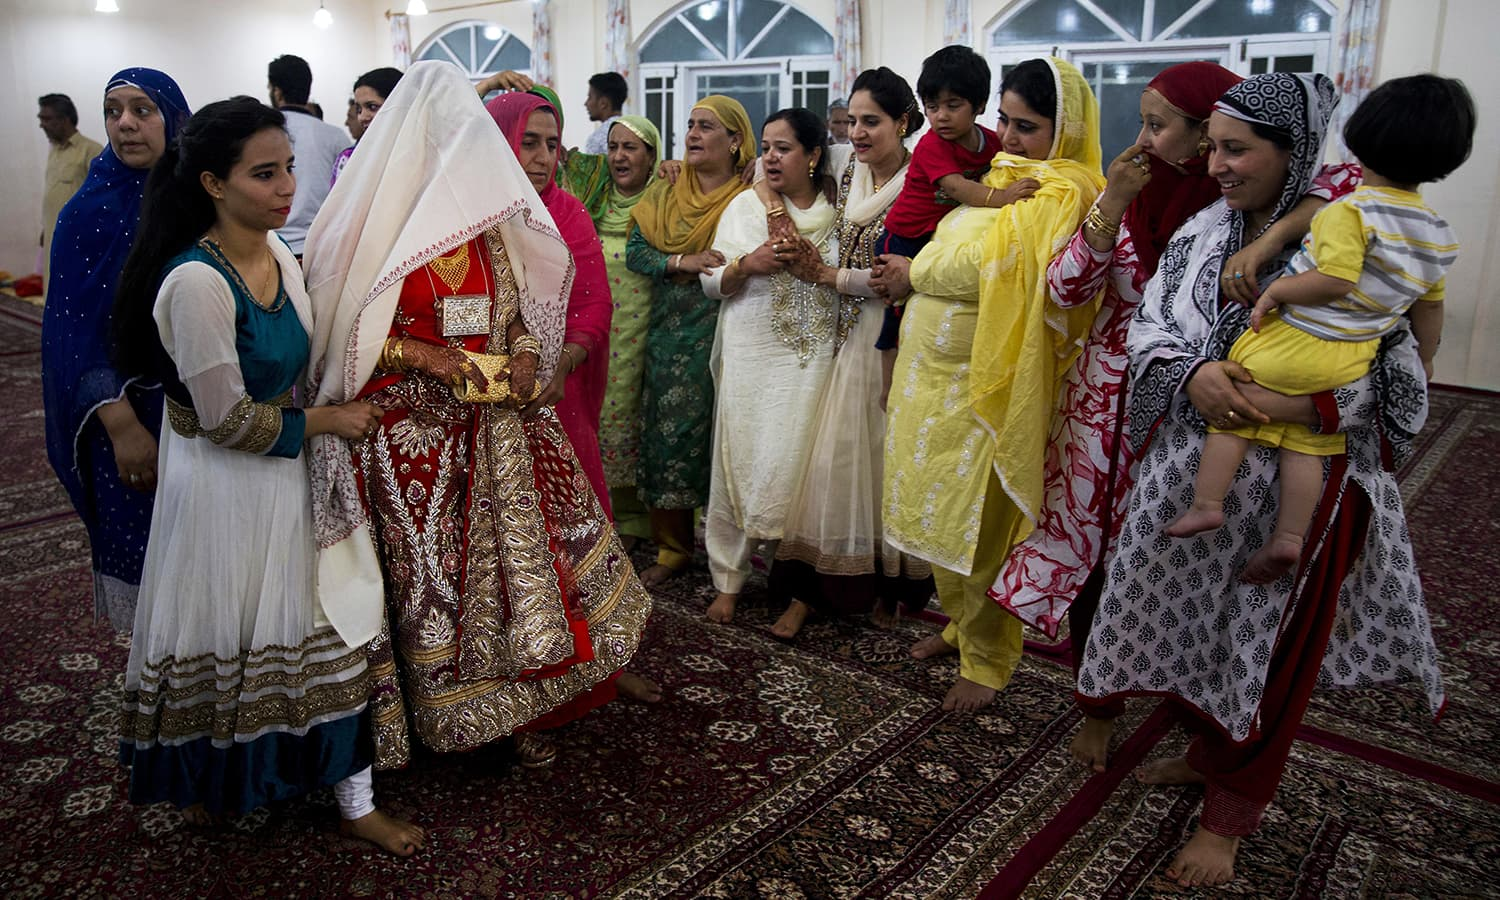 Relatives of the groom surround Kashmiri bride Quansar, covered with a white shawl, during her wedding ceremony.— AP